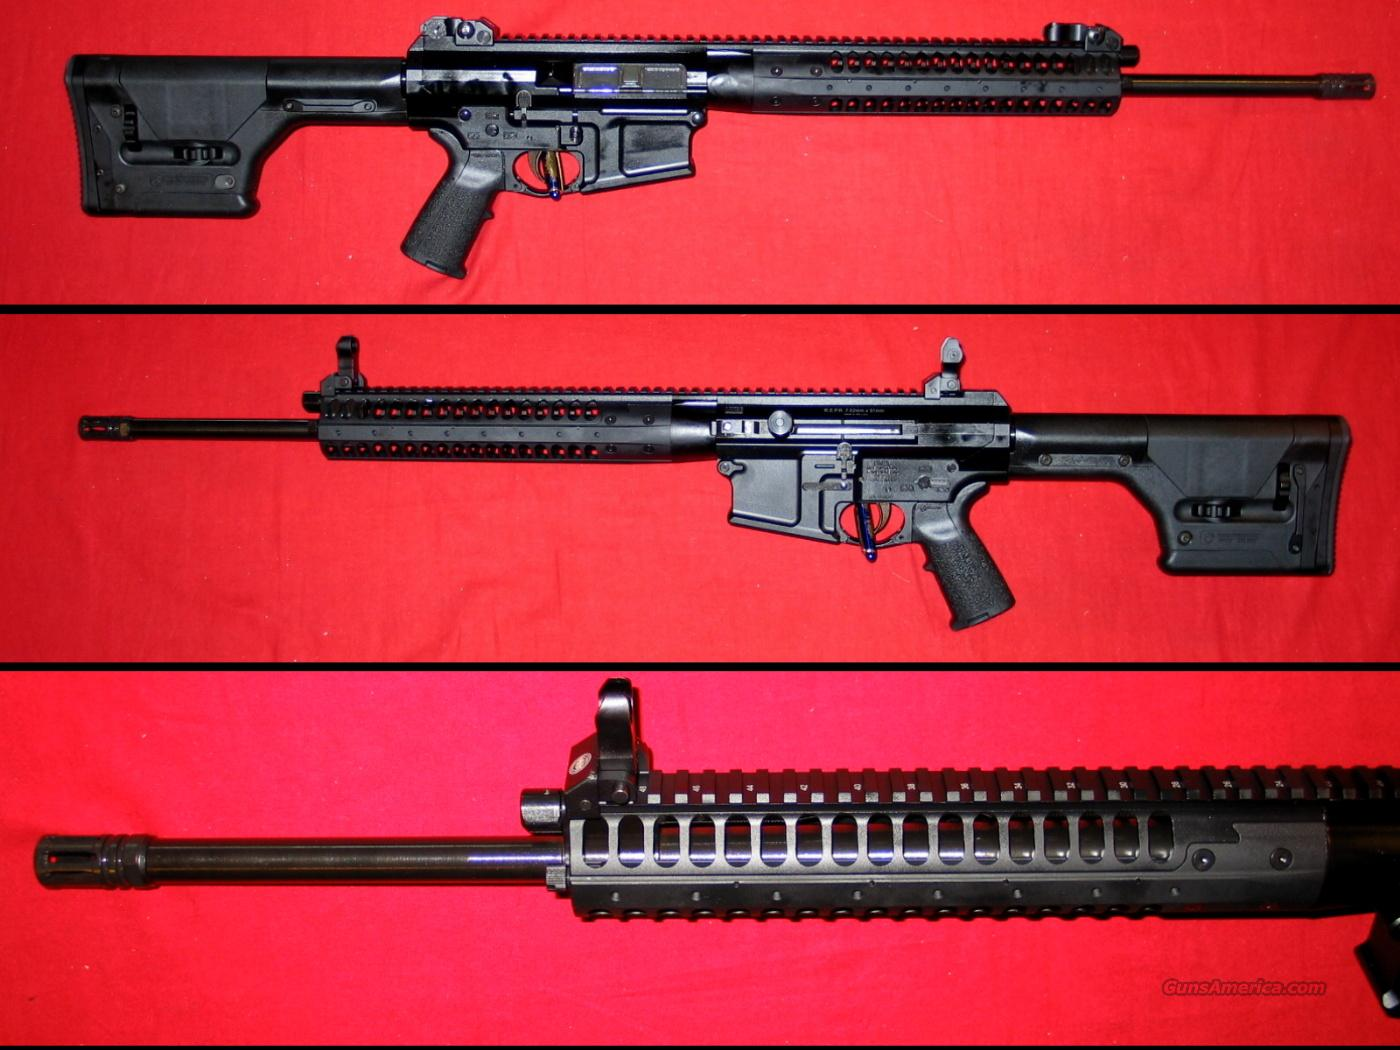 "LWRC REPR .308, 20"" - NIB  Guns > Rifles > AR-15 Rifles - Small Manufacturers > Complete Rifle"